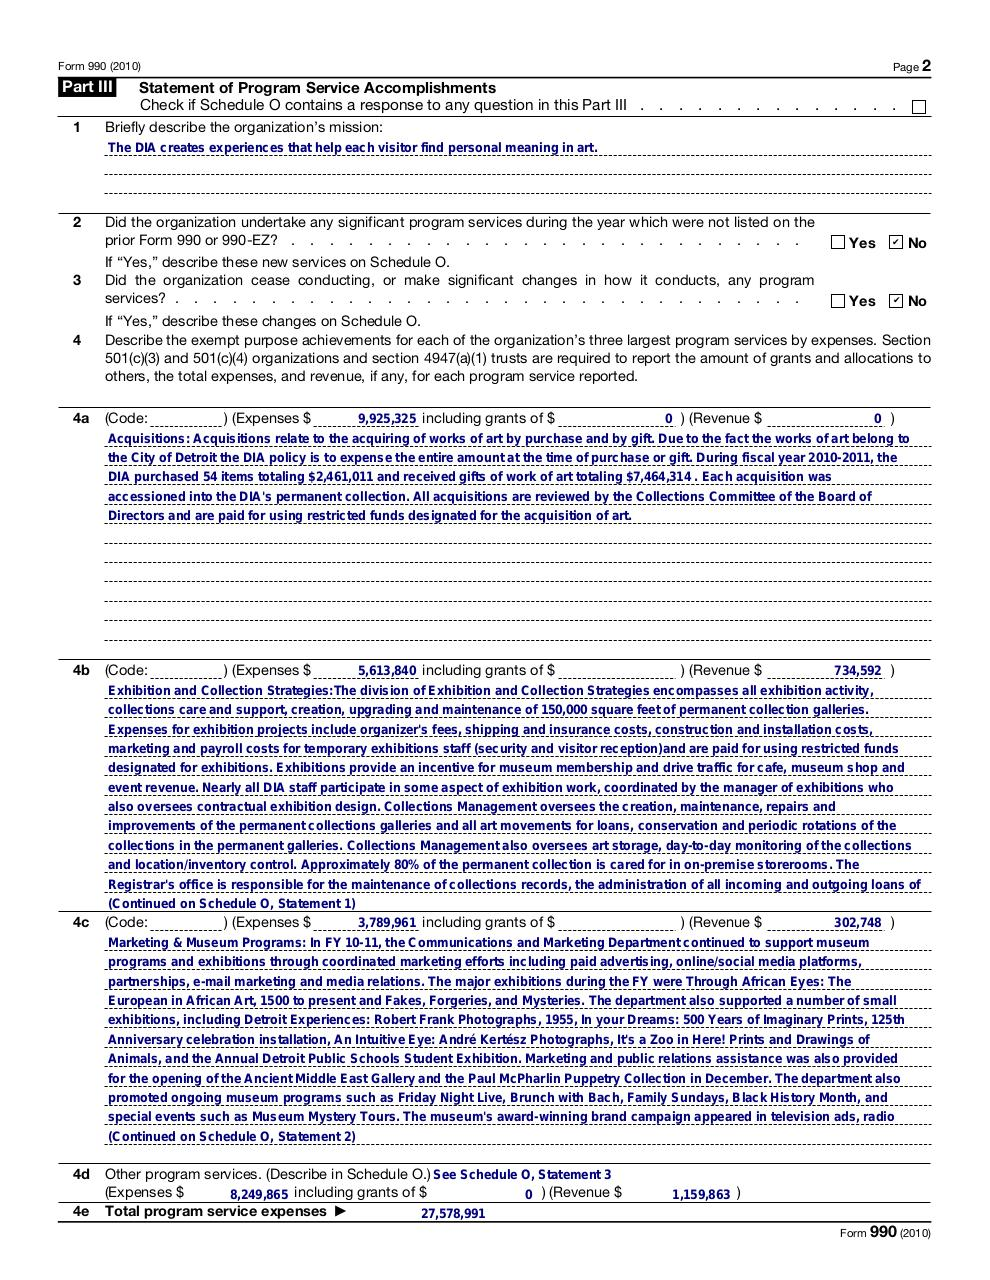 DIA FORM 990 (FILED 2012 FOR 2011) 2010 FORM 990 FY10-11 FINAL.PDF - page 2/48